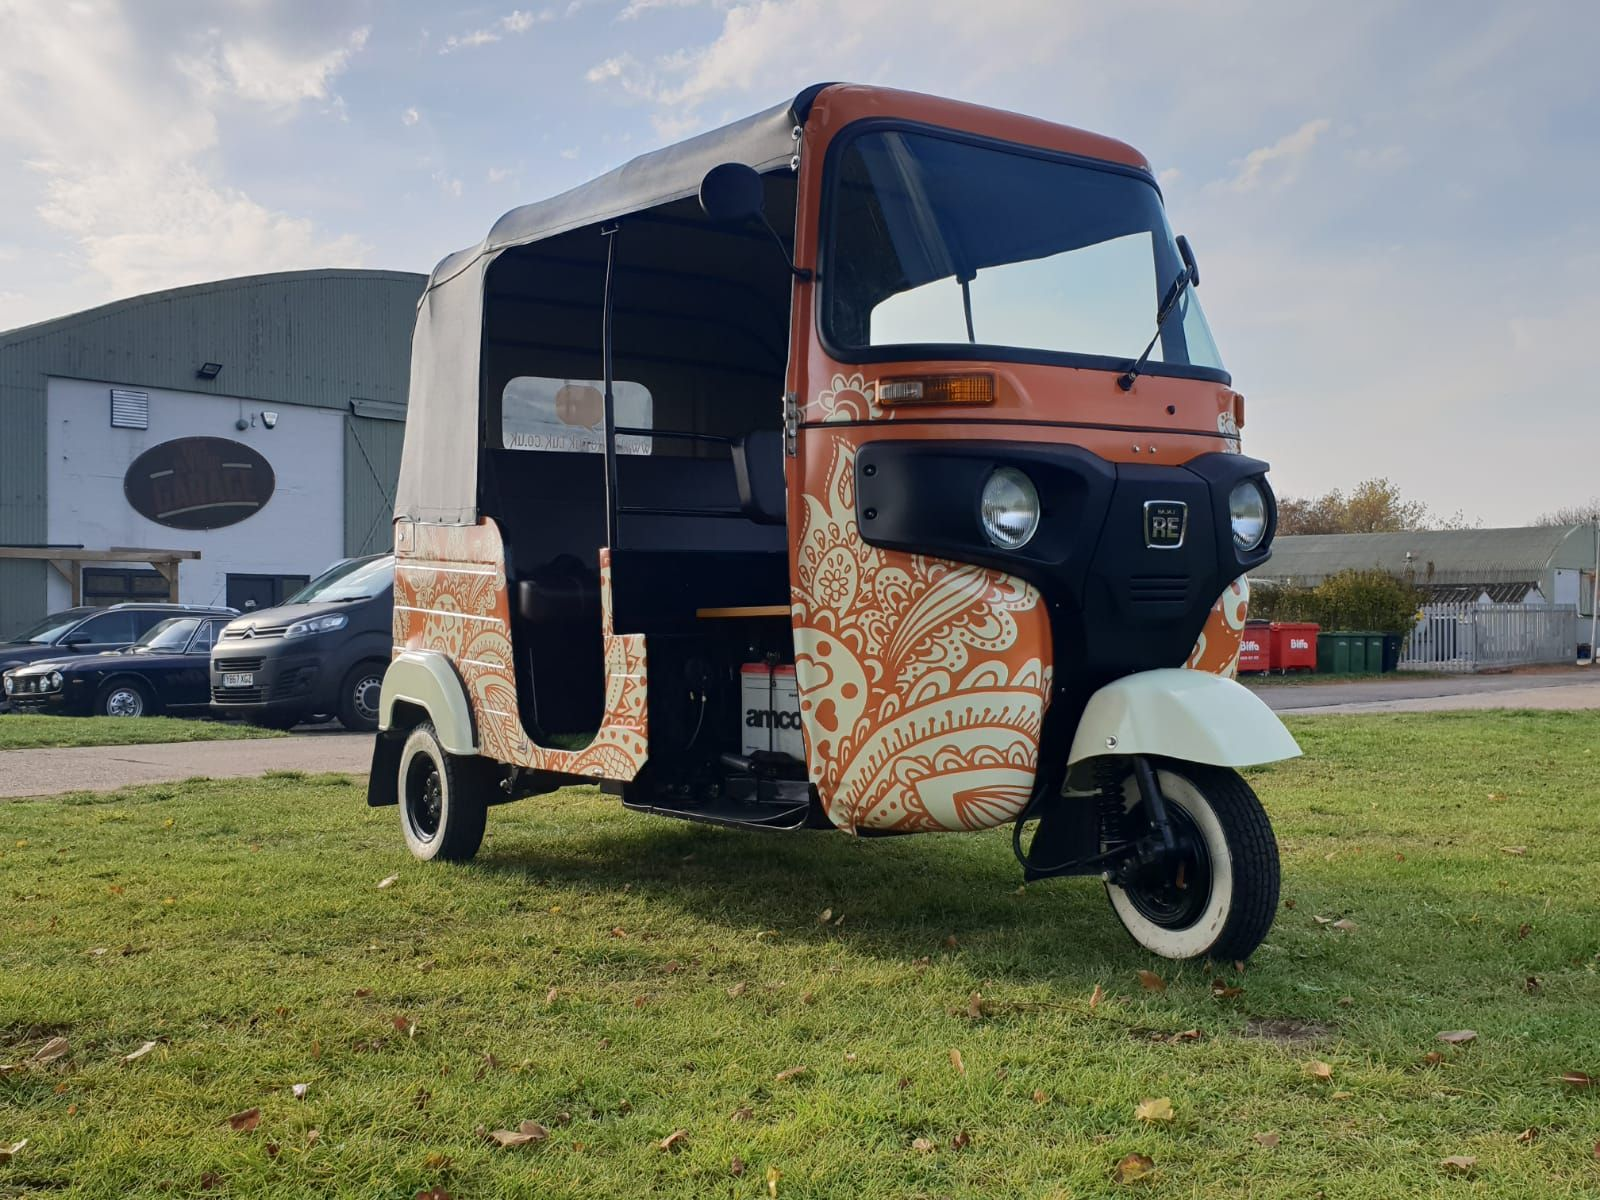 Vinyl Van Wrapping in 2020 Custom vinyl, Car wrap, Van wrap